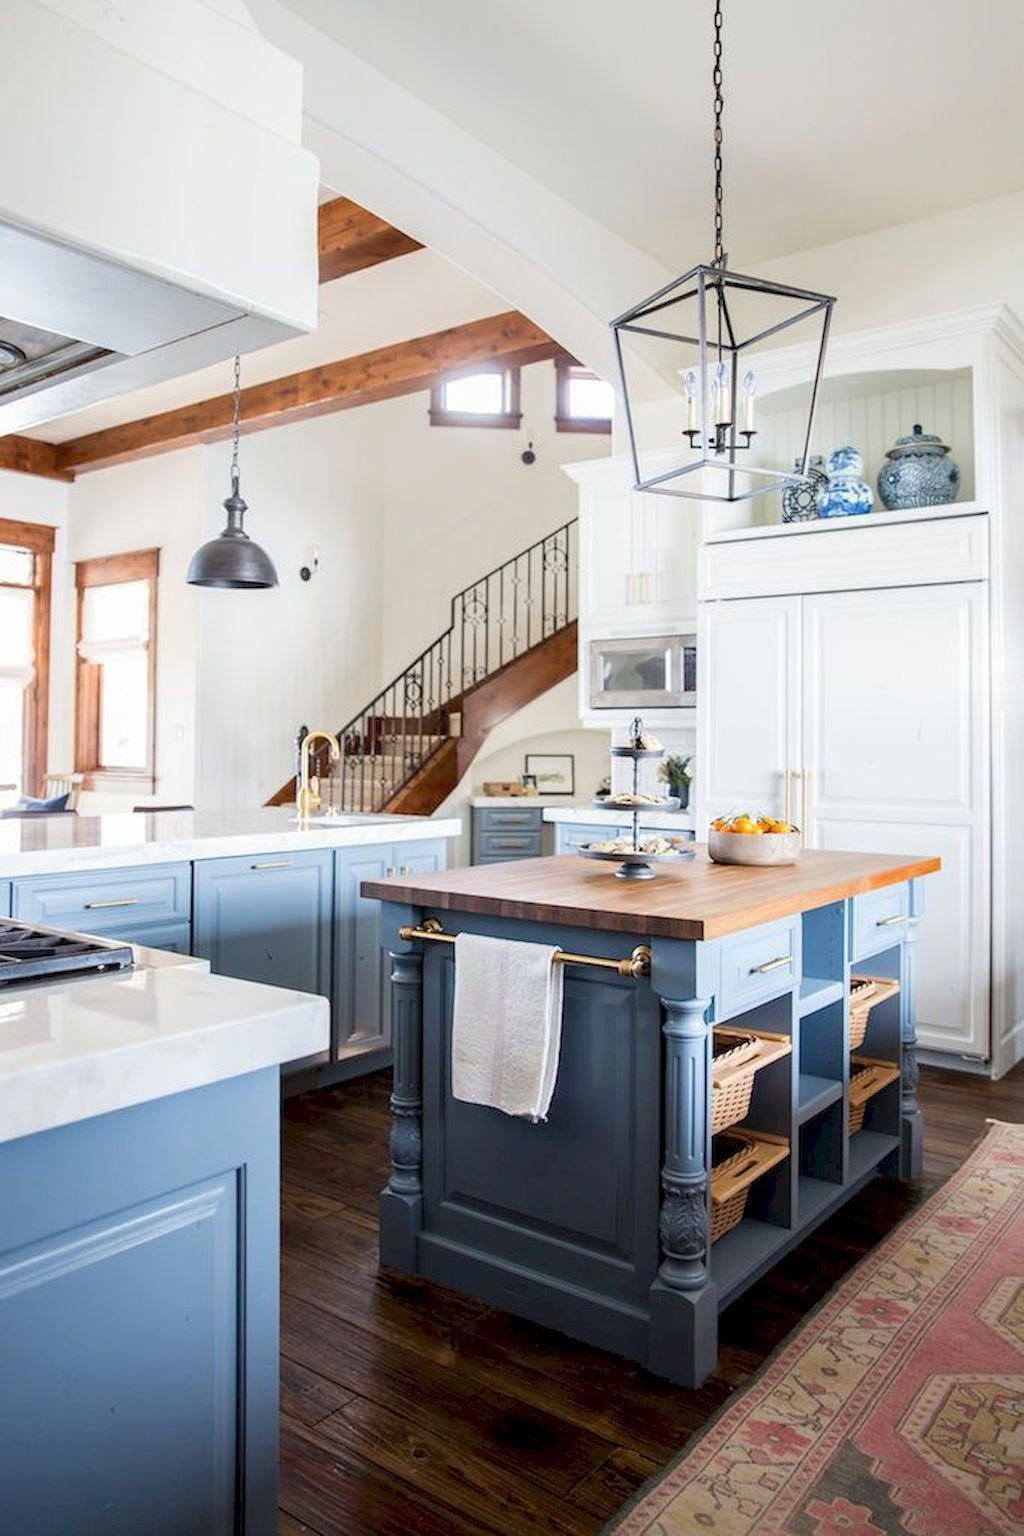 The ultimate guide if you live in a home that has not been updated in decades, then your kitchen likely needs a renovation. 100 Stunning Farmhouse Kitchen Ideas on A Budget 1 # ...